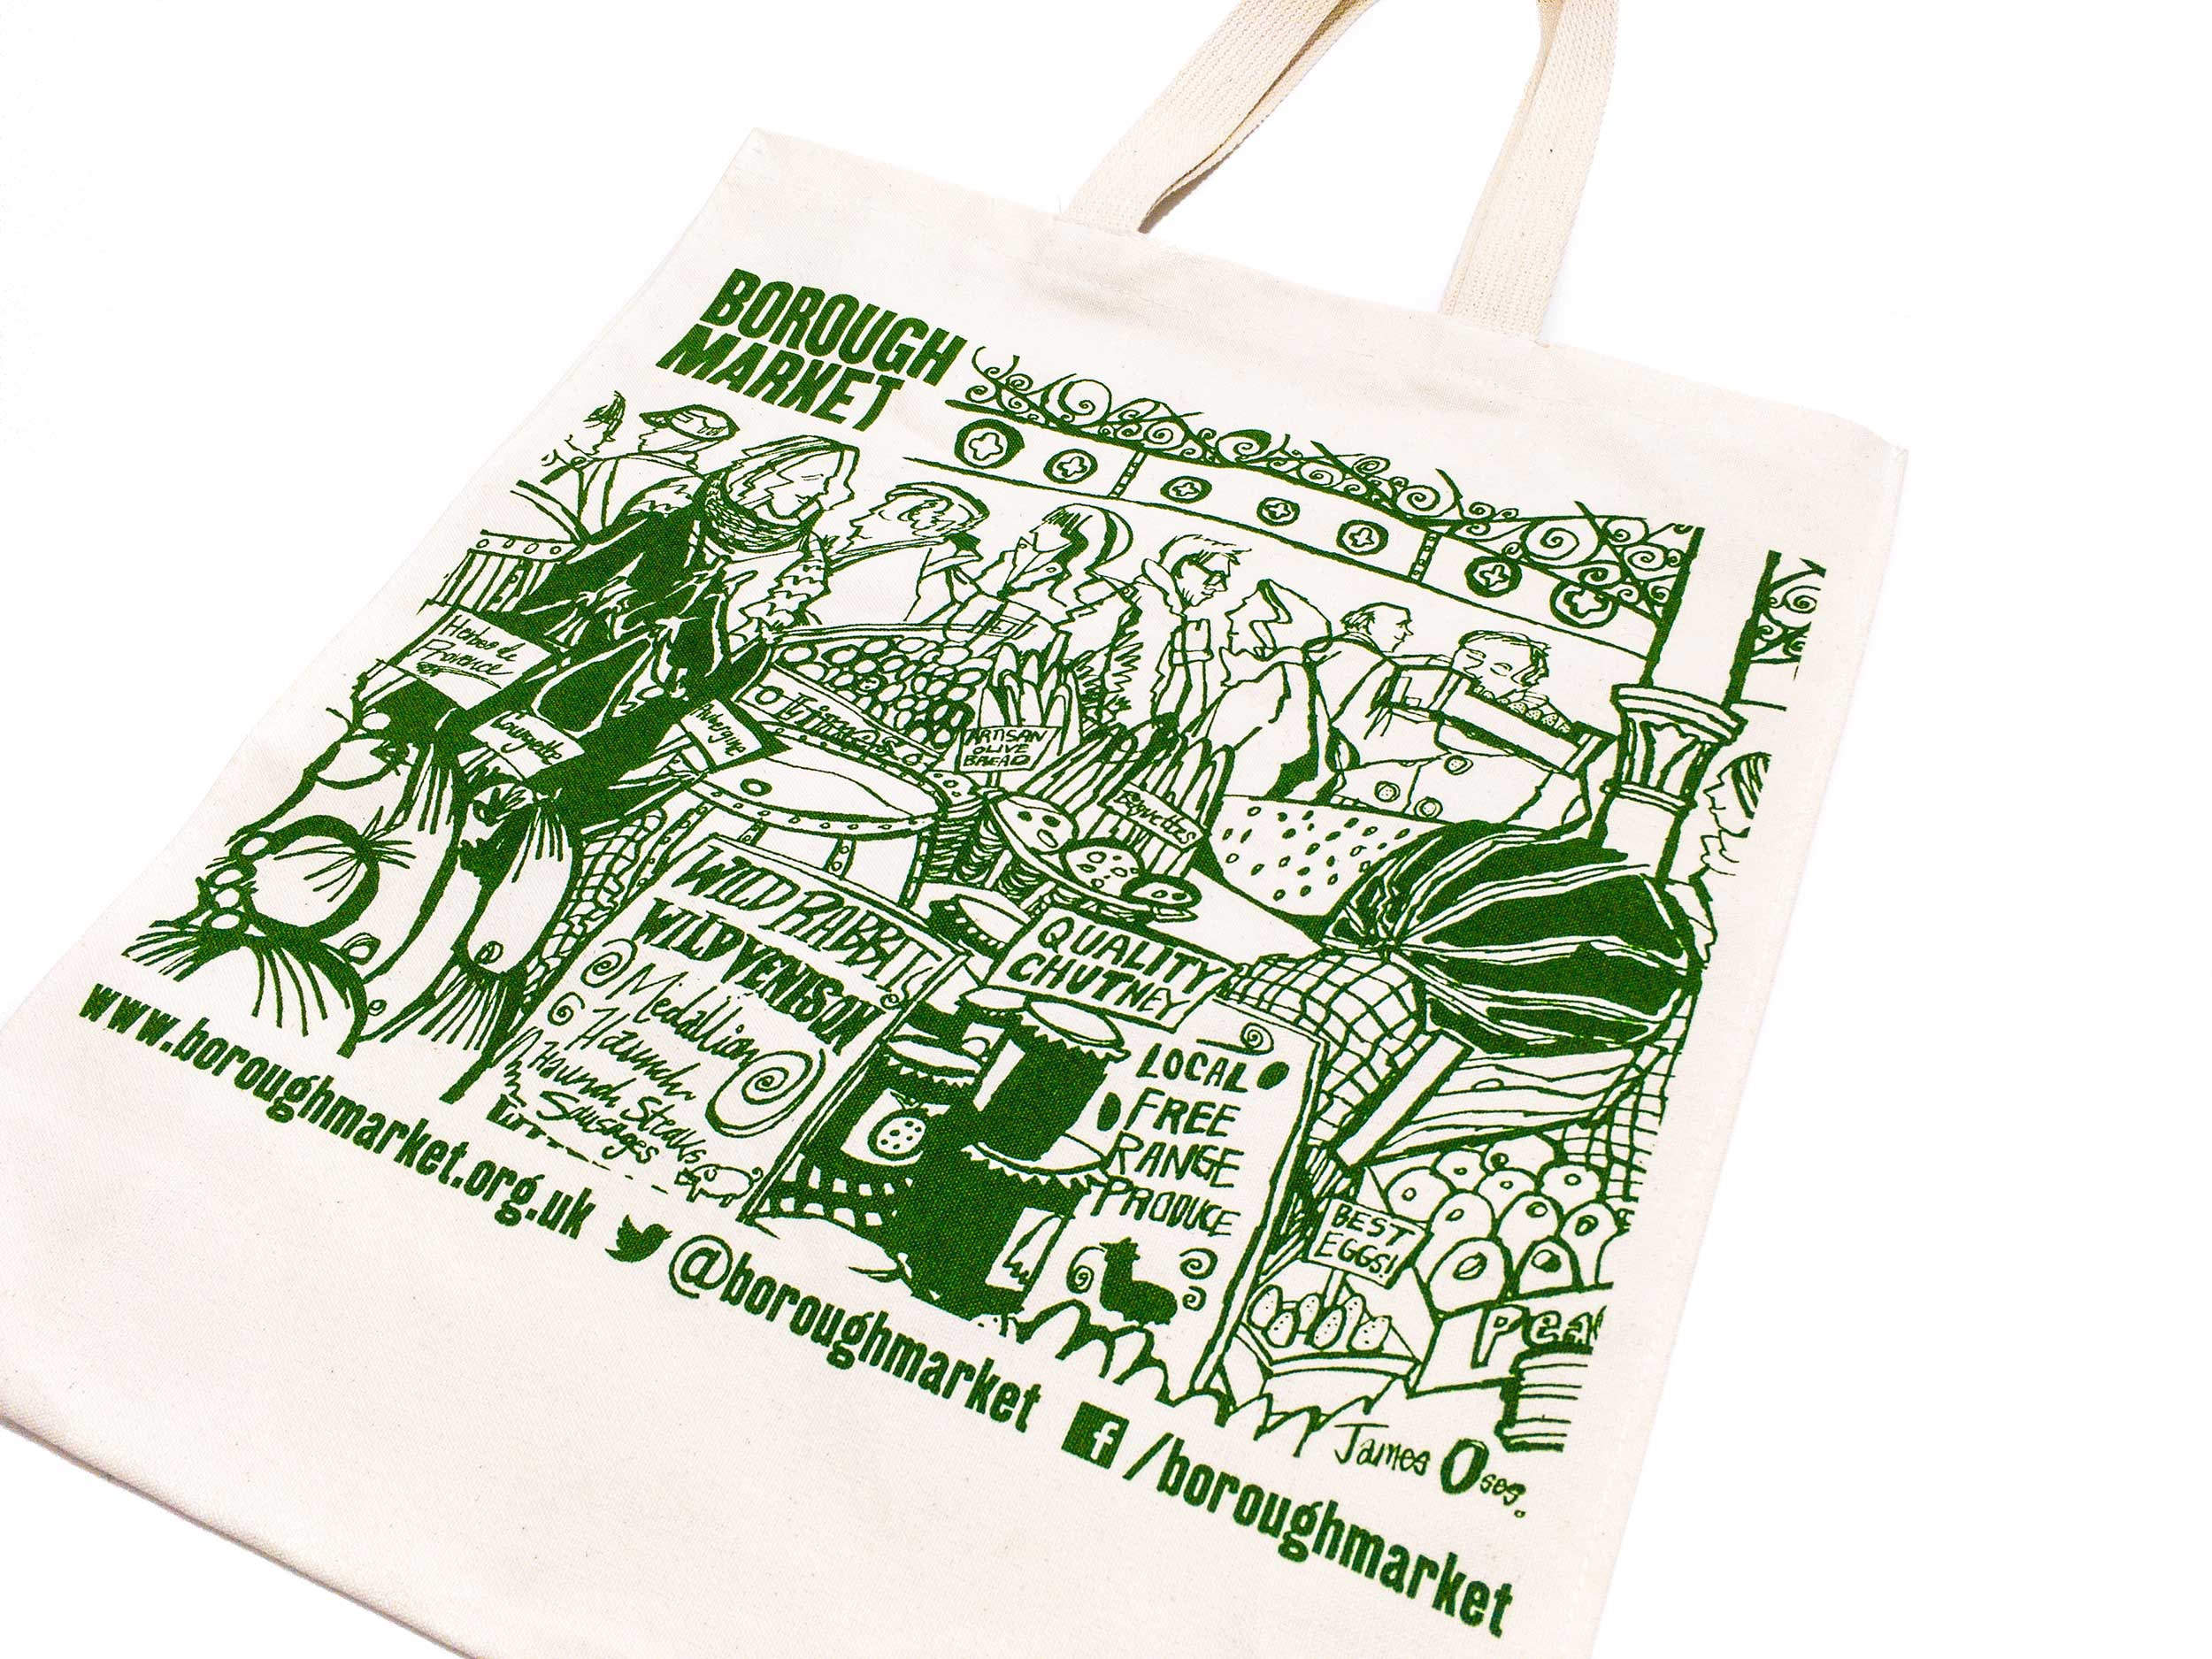 Borough Market merchandise by James Oses, image 3